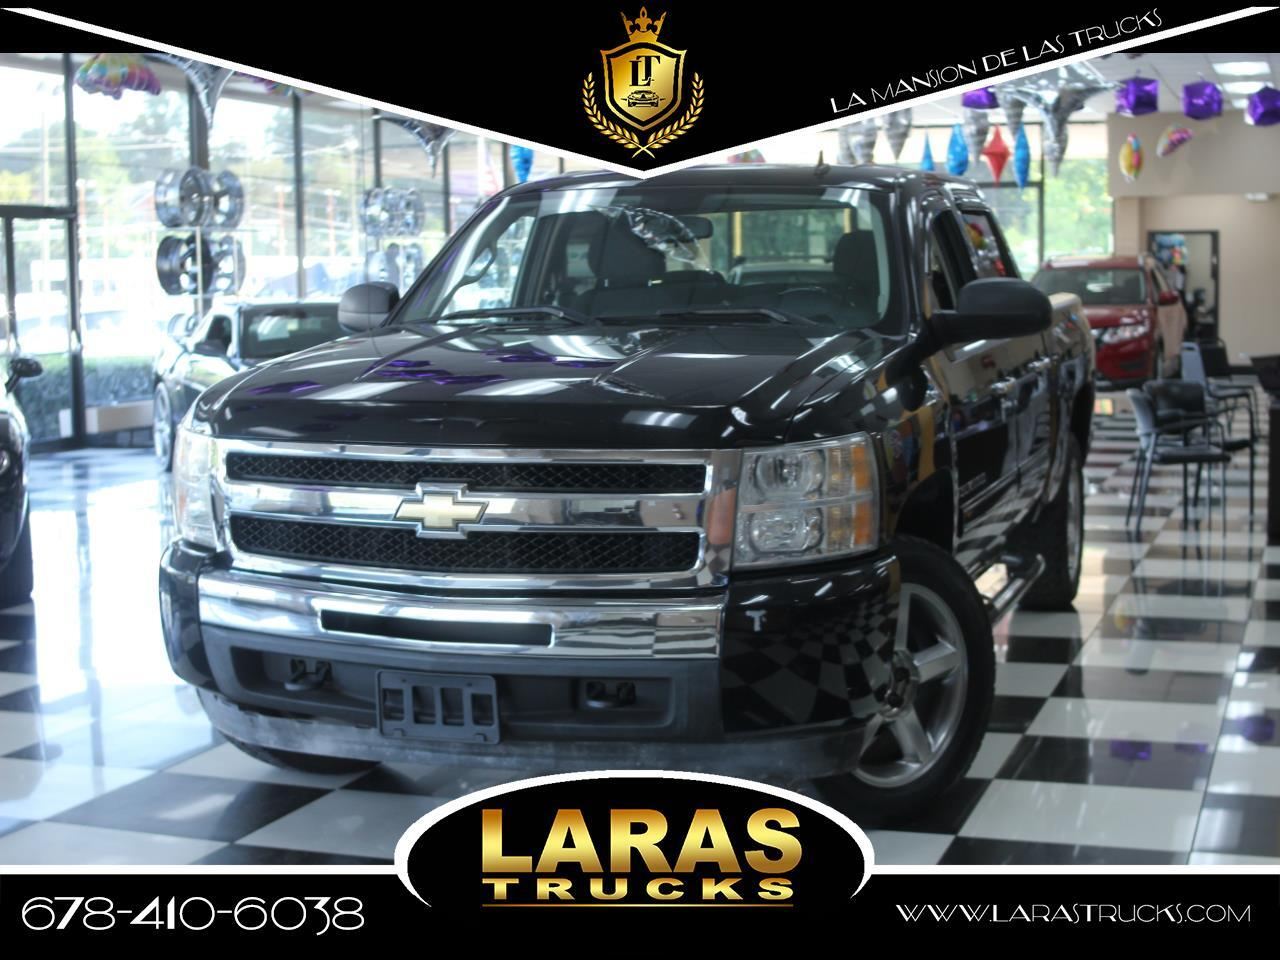 Used Chevrolet Silverado 1500 for Sale (with Dealer Reviews